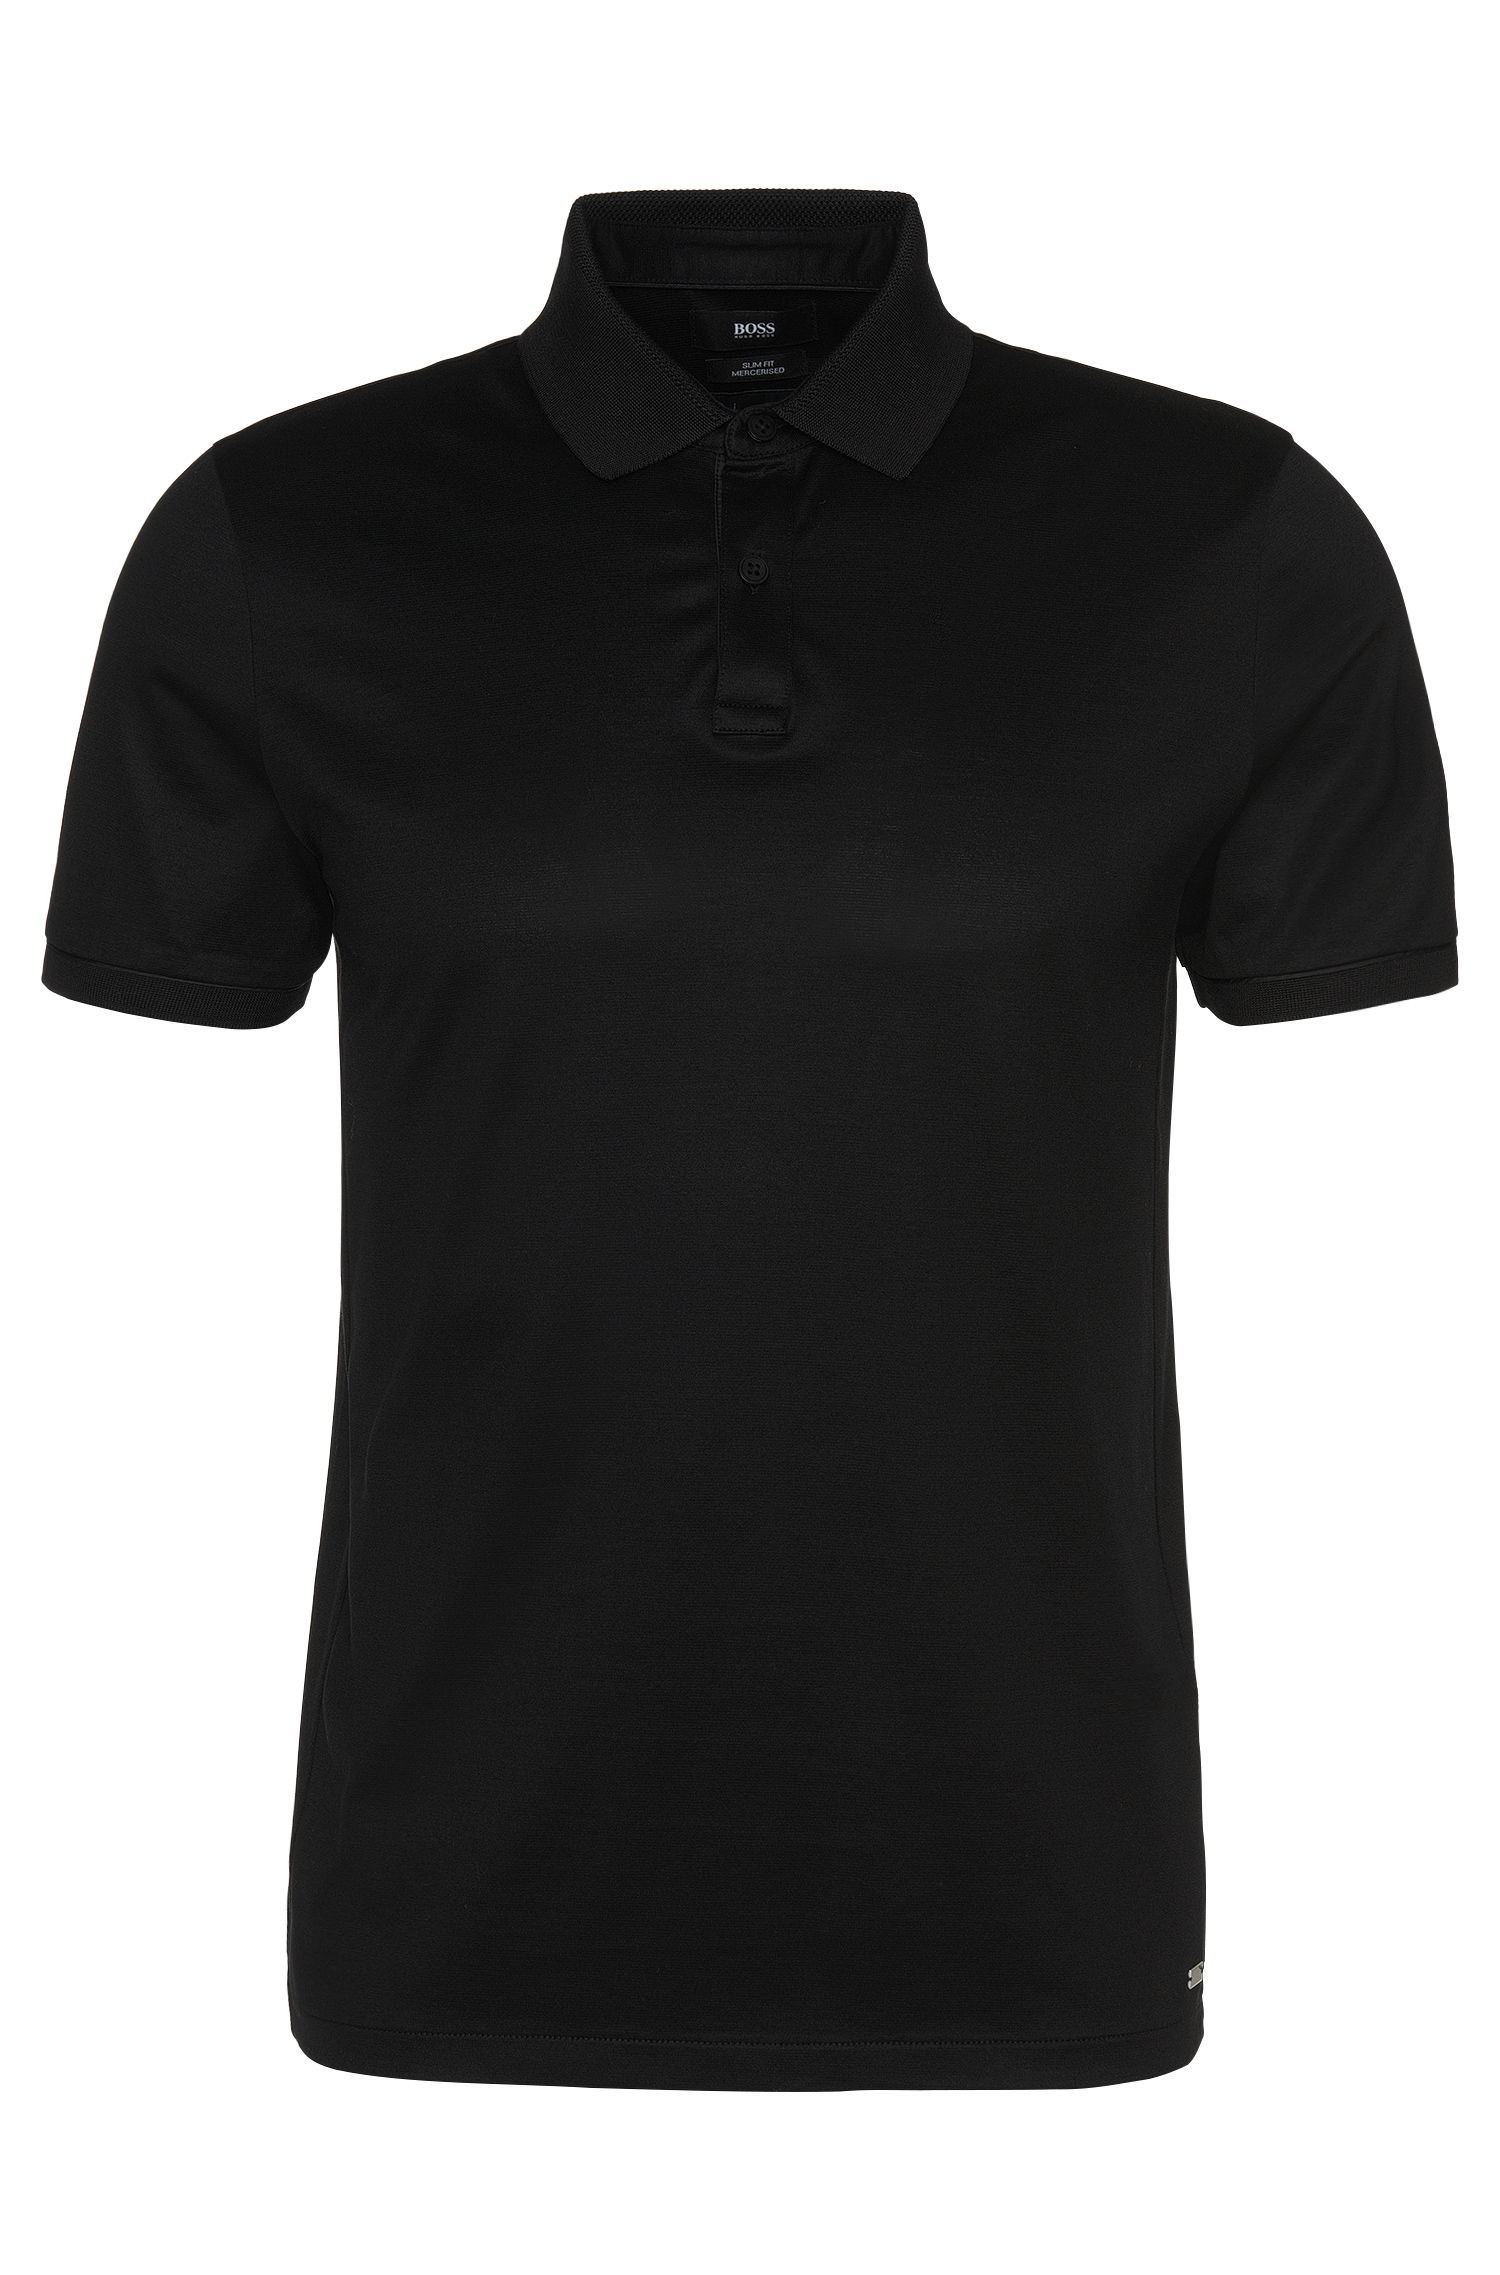 'Penrose' | Slim Fit, Mercerized Stretch Cotton Polo